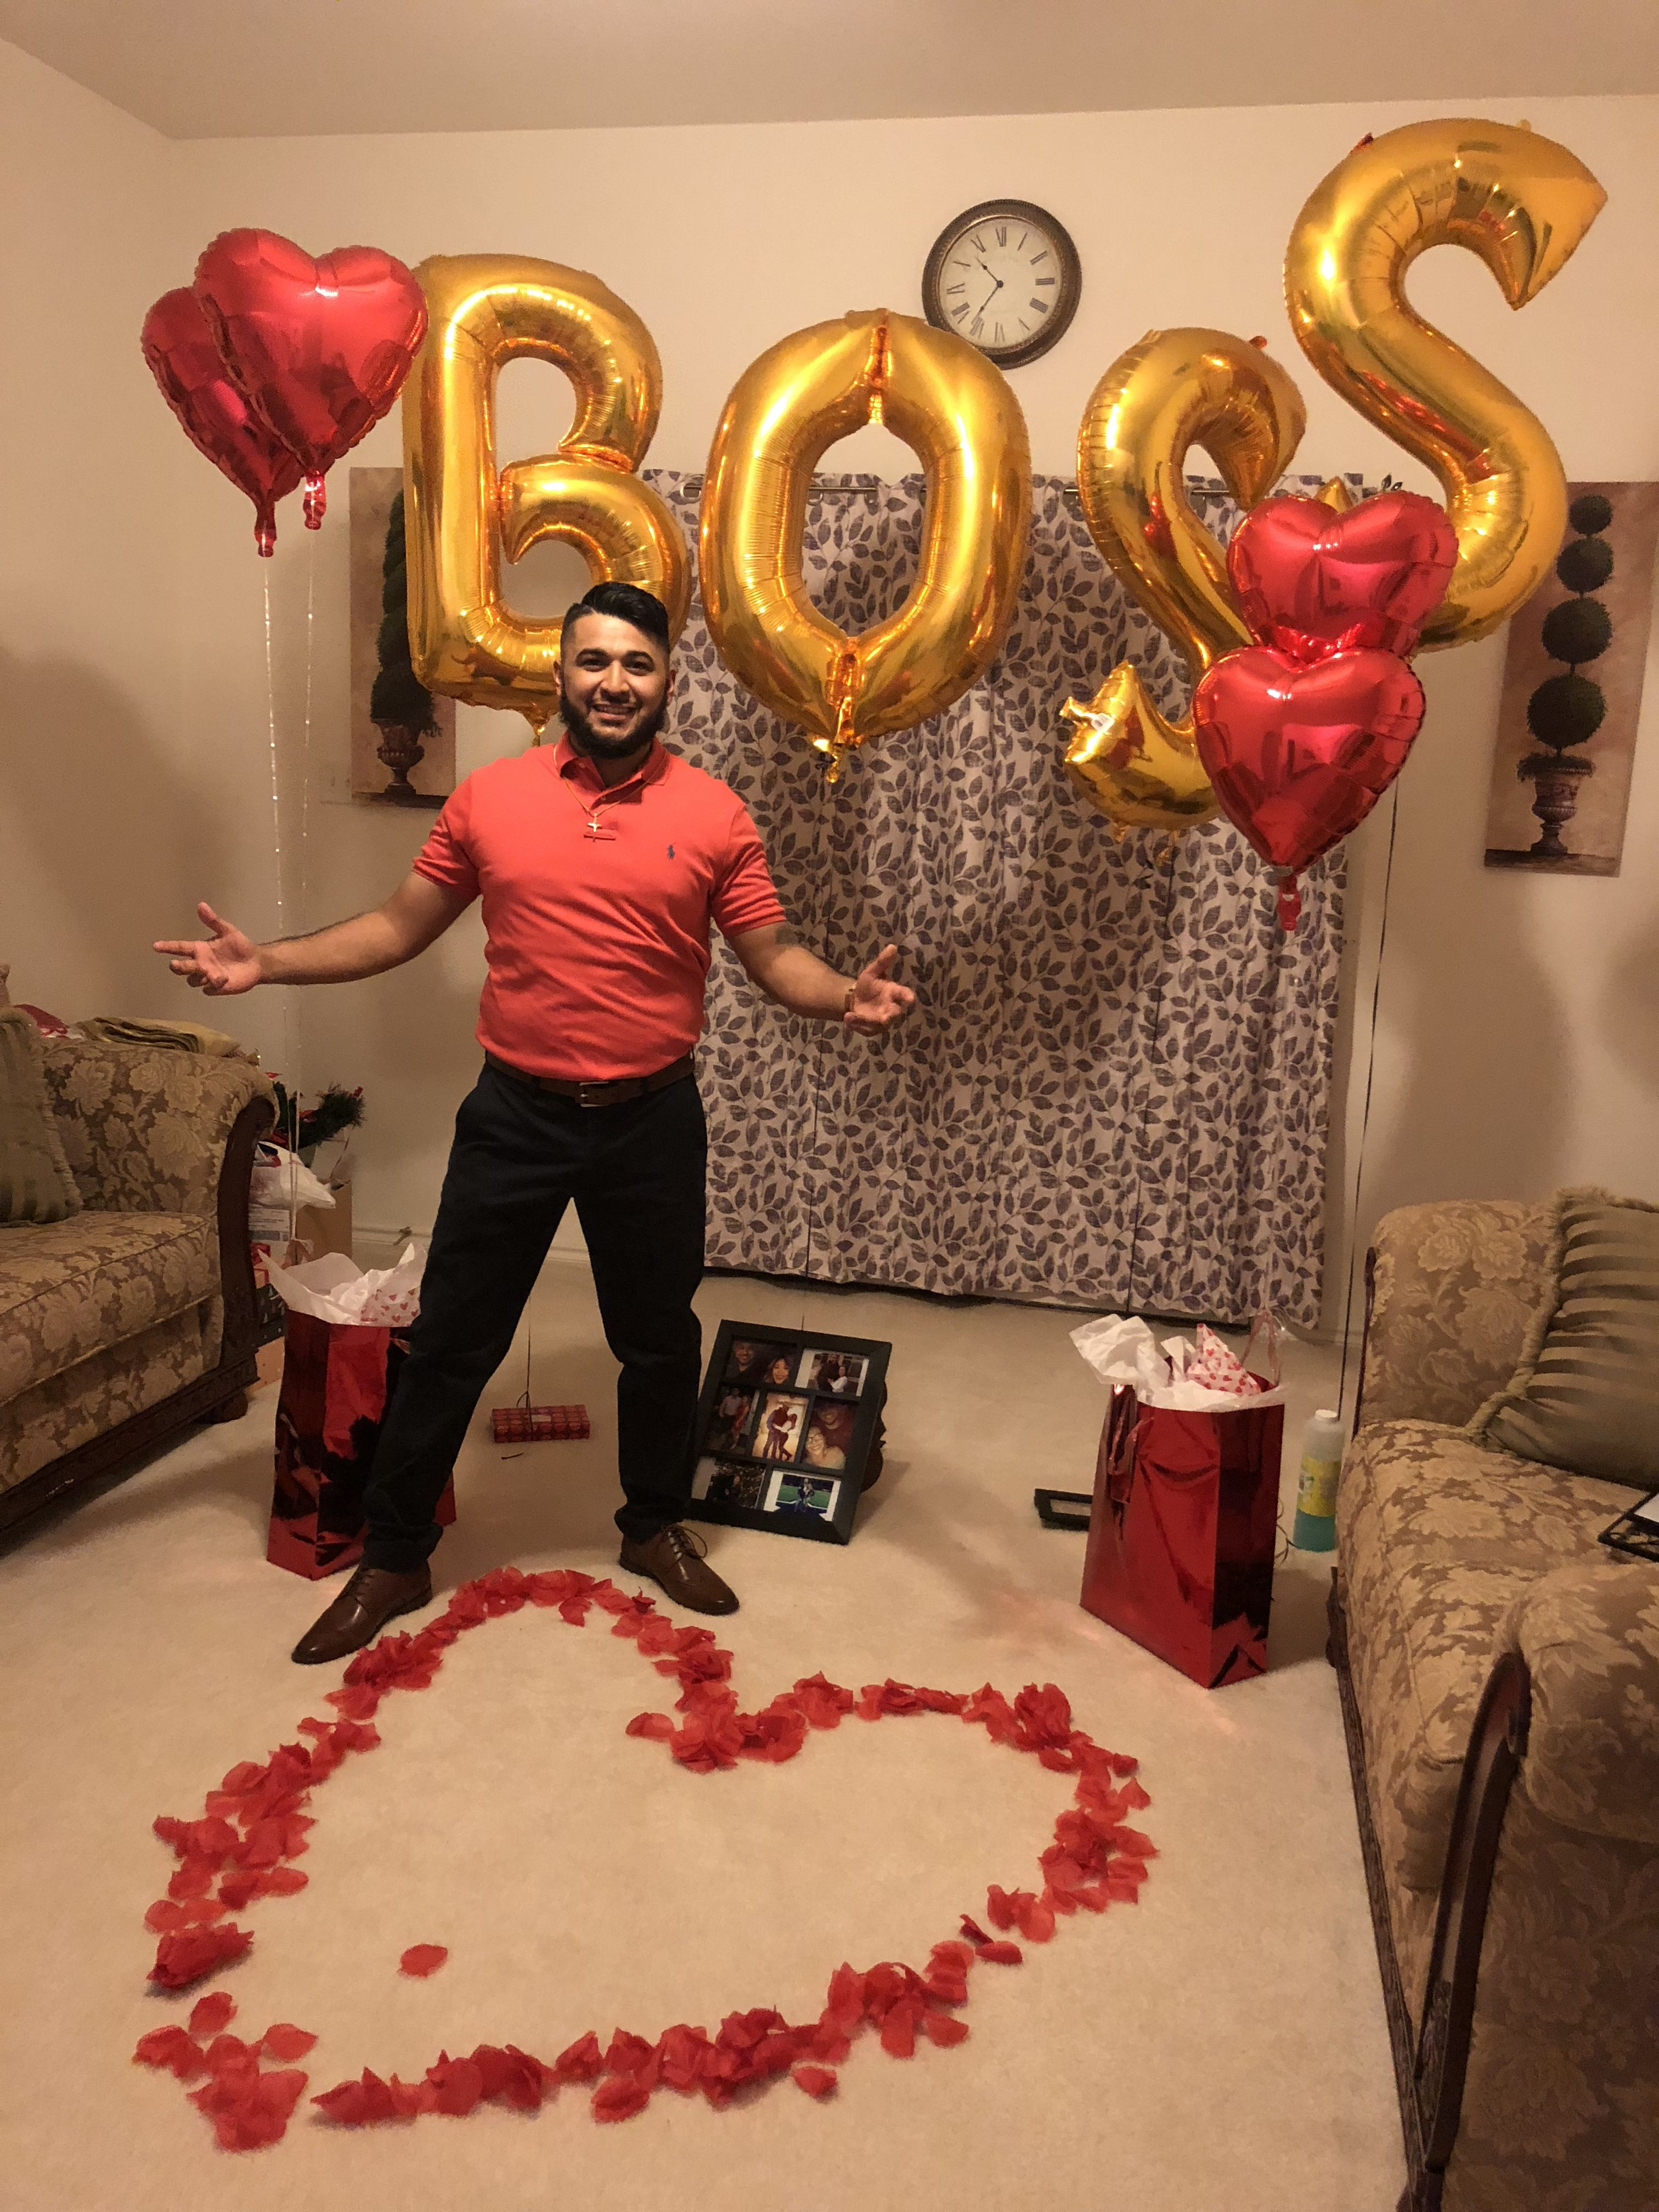 When you surprise your boyfriend for his birthday ️ #